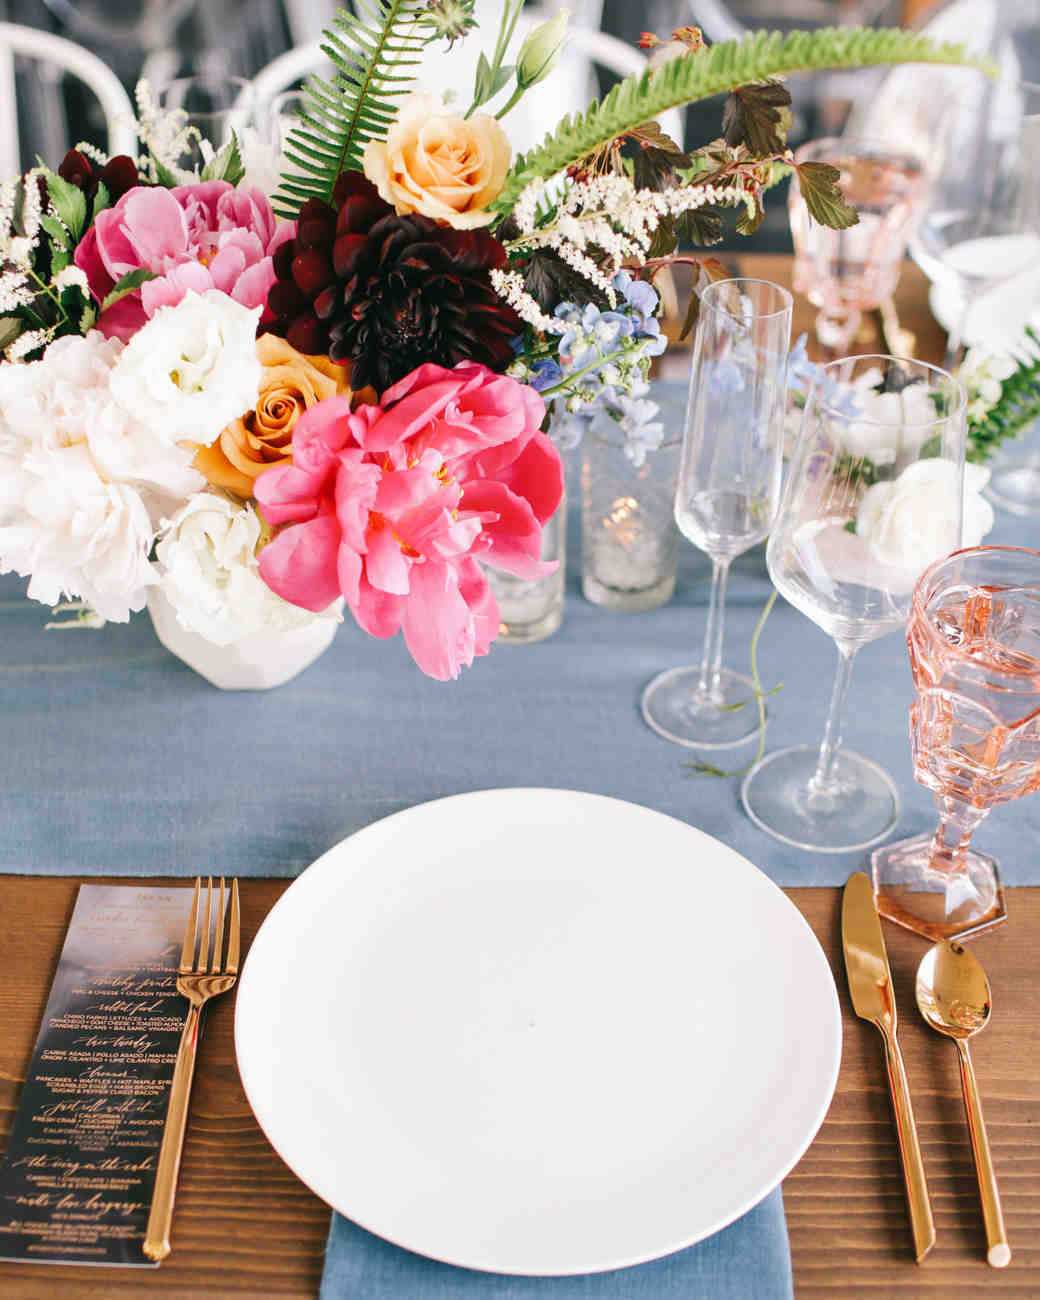 6-ever-after-events-table-centerpiece-0116.jpg